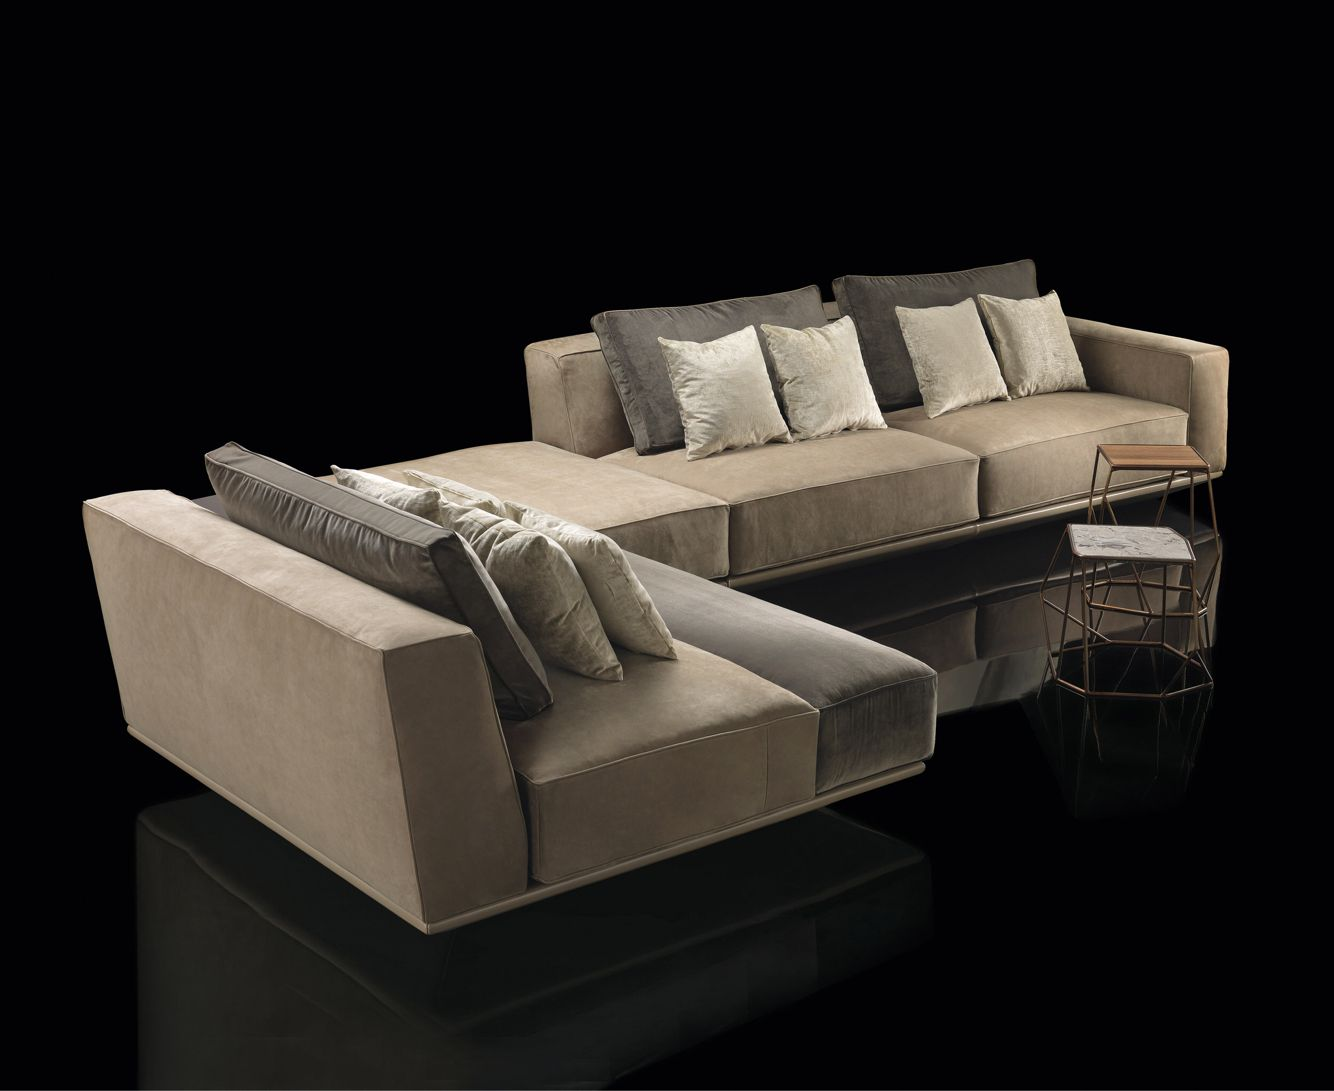 Flexsteel Sofa Henge made in Italy Hypnose sofa project by Massimo Castagna